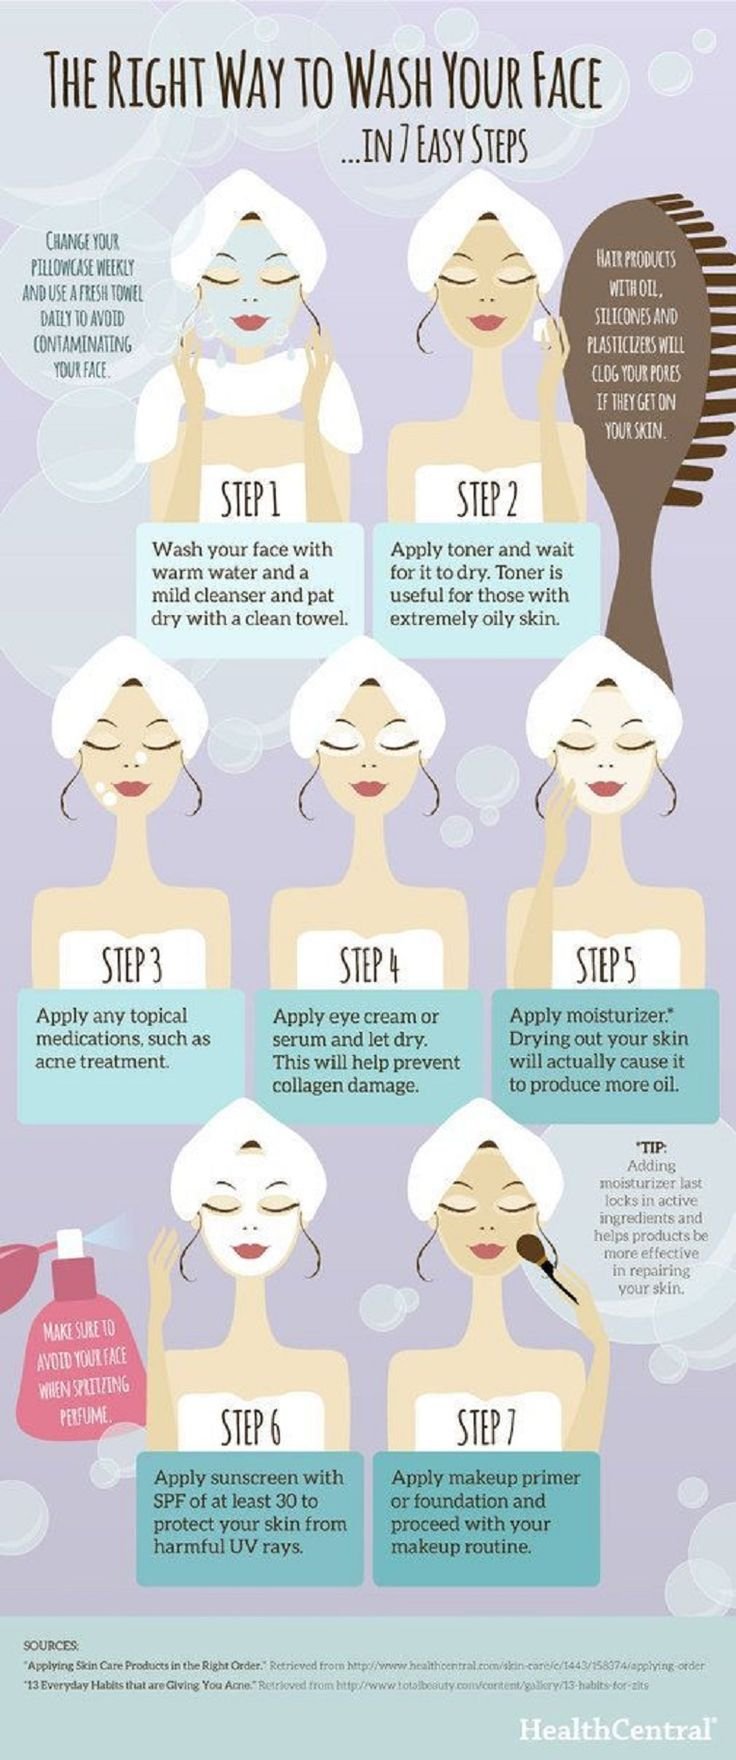 Morning routine ... Keep your face clean before applying make up